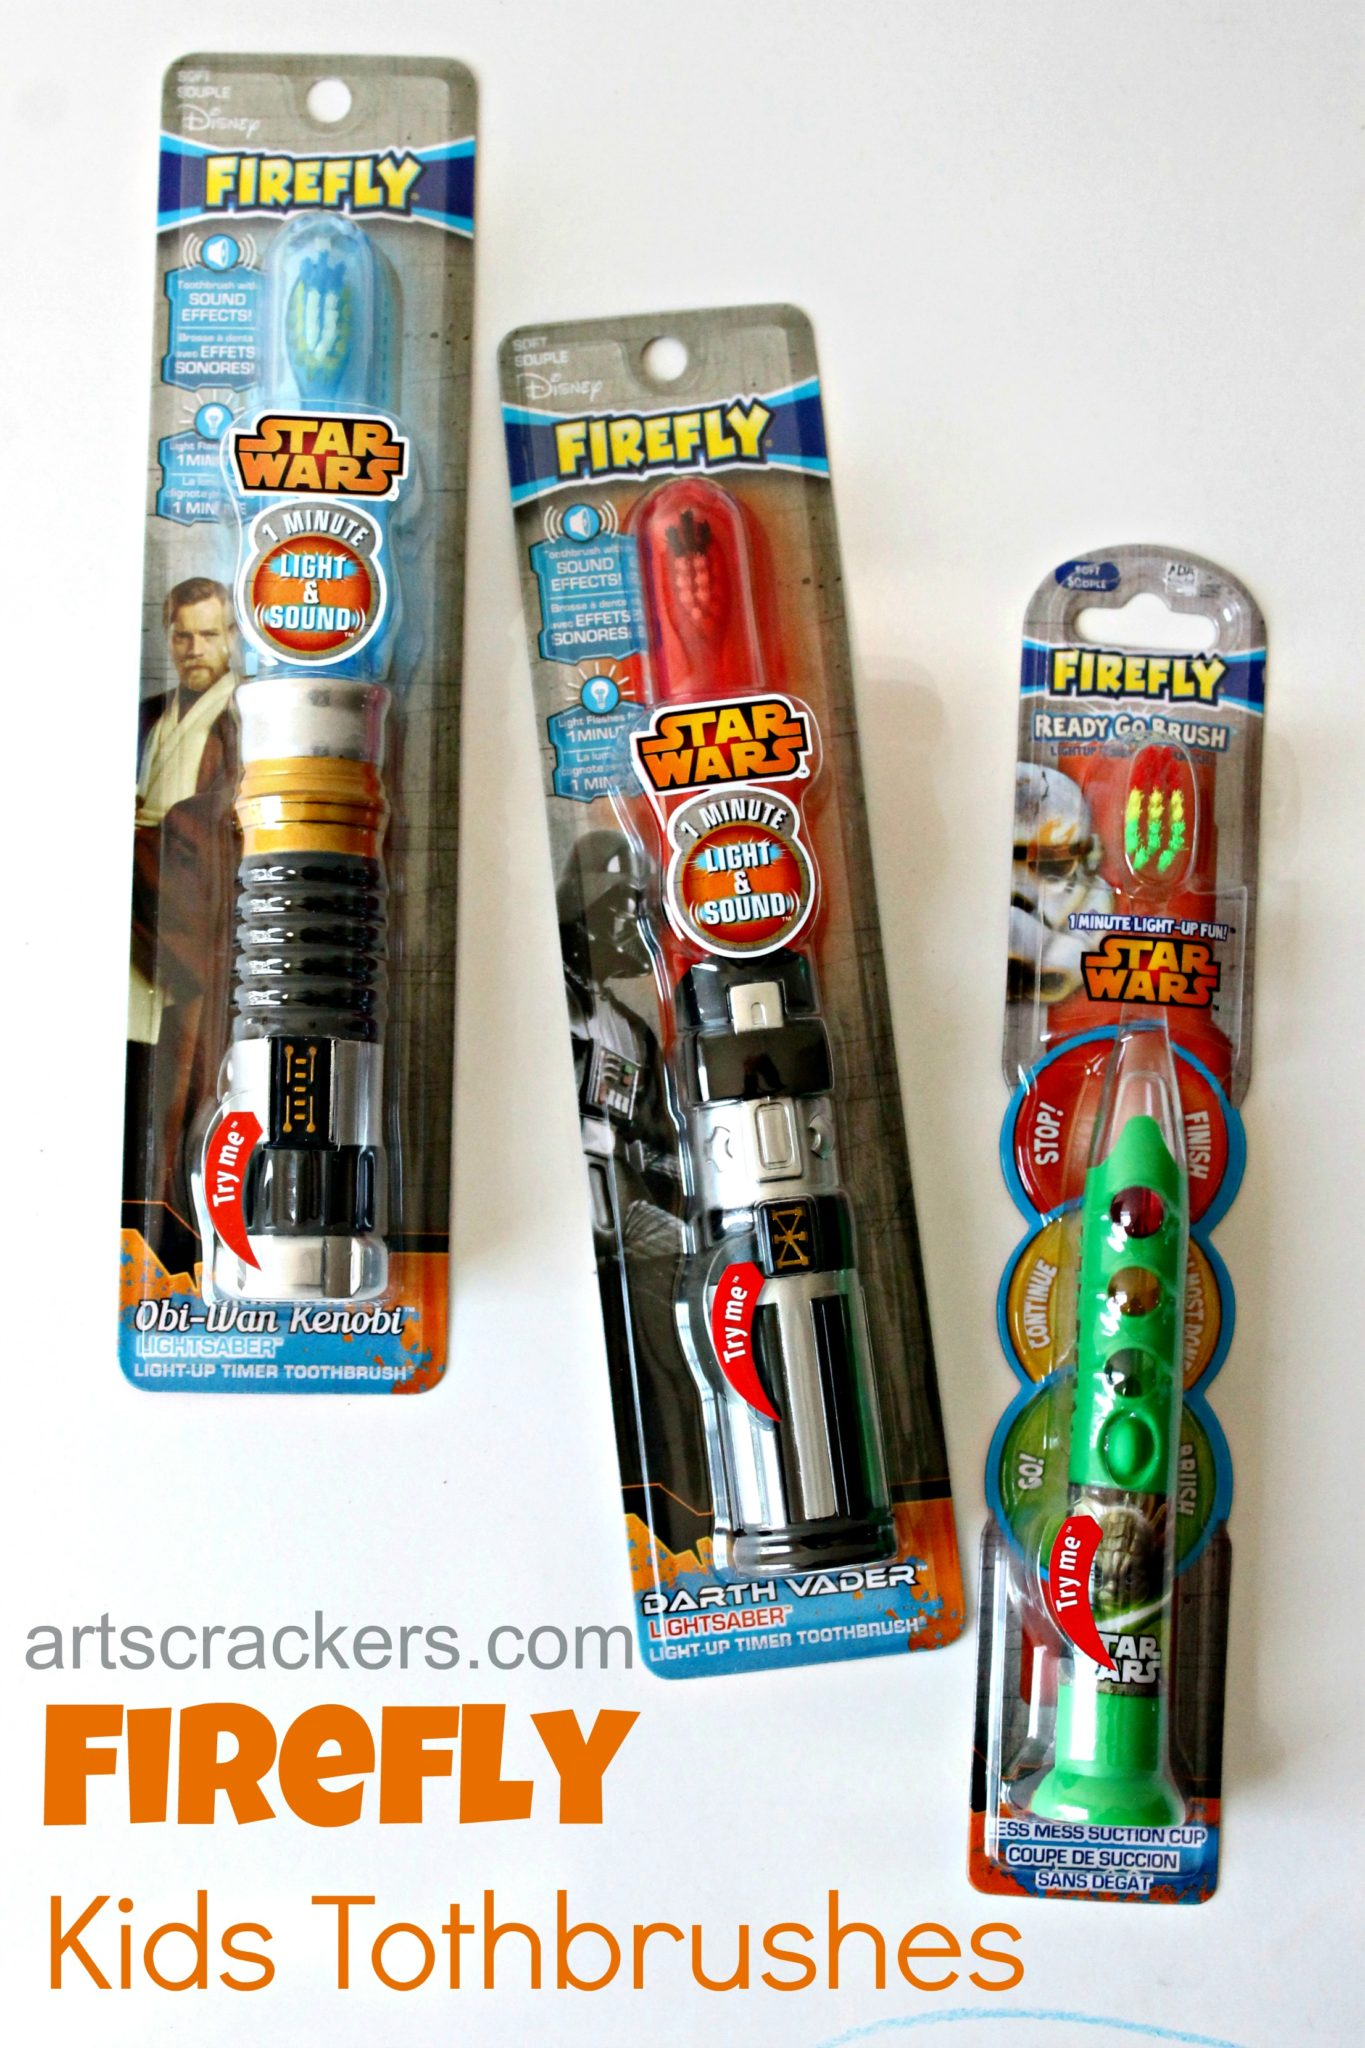 Firefly Kids Toothbrushes. Click the picture to read the review.